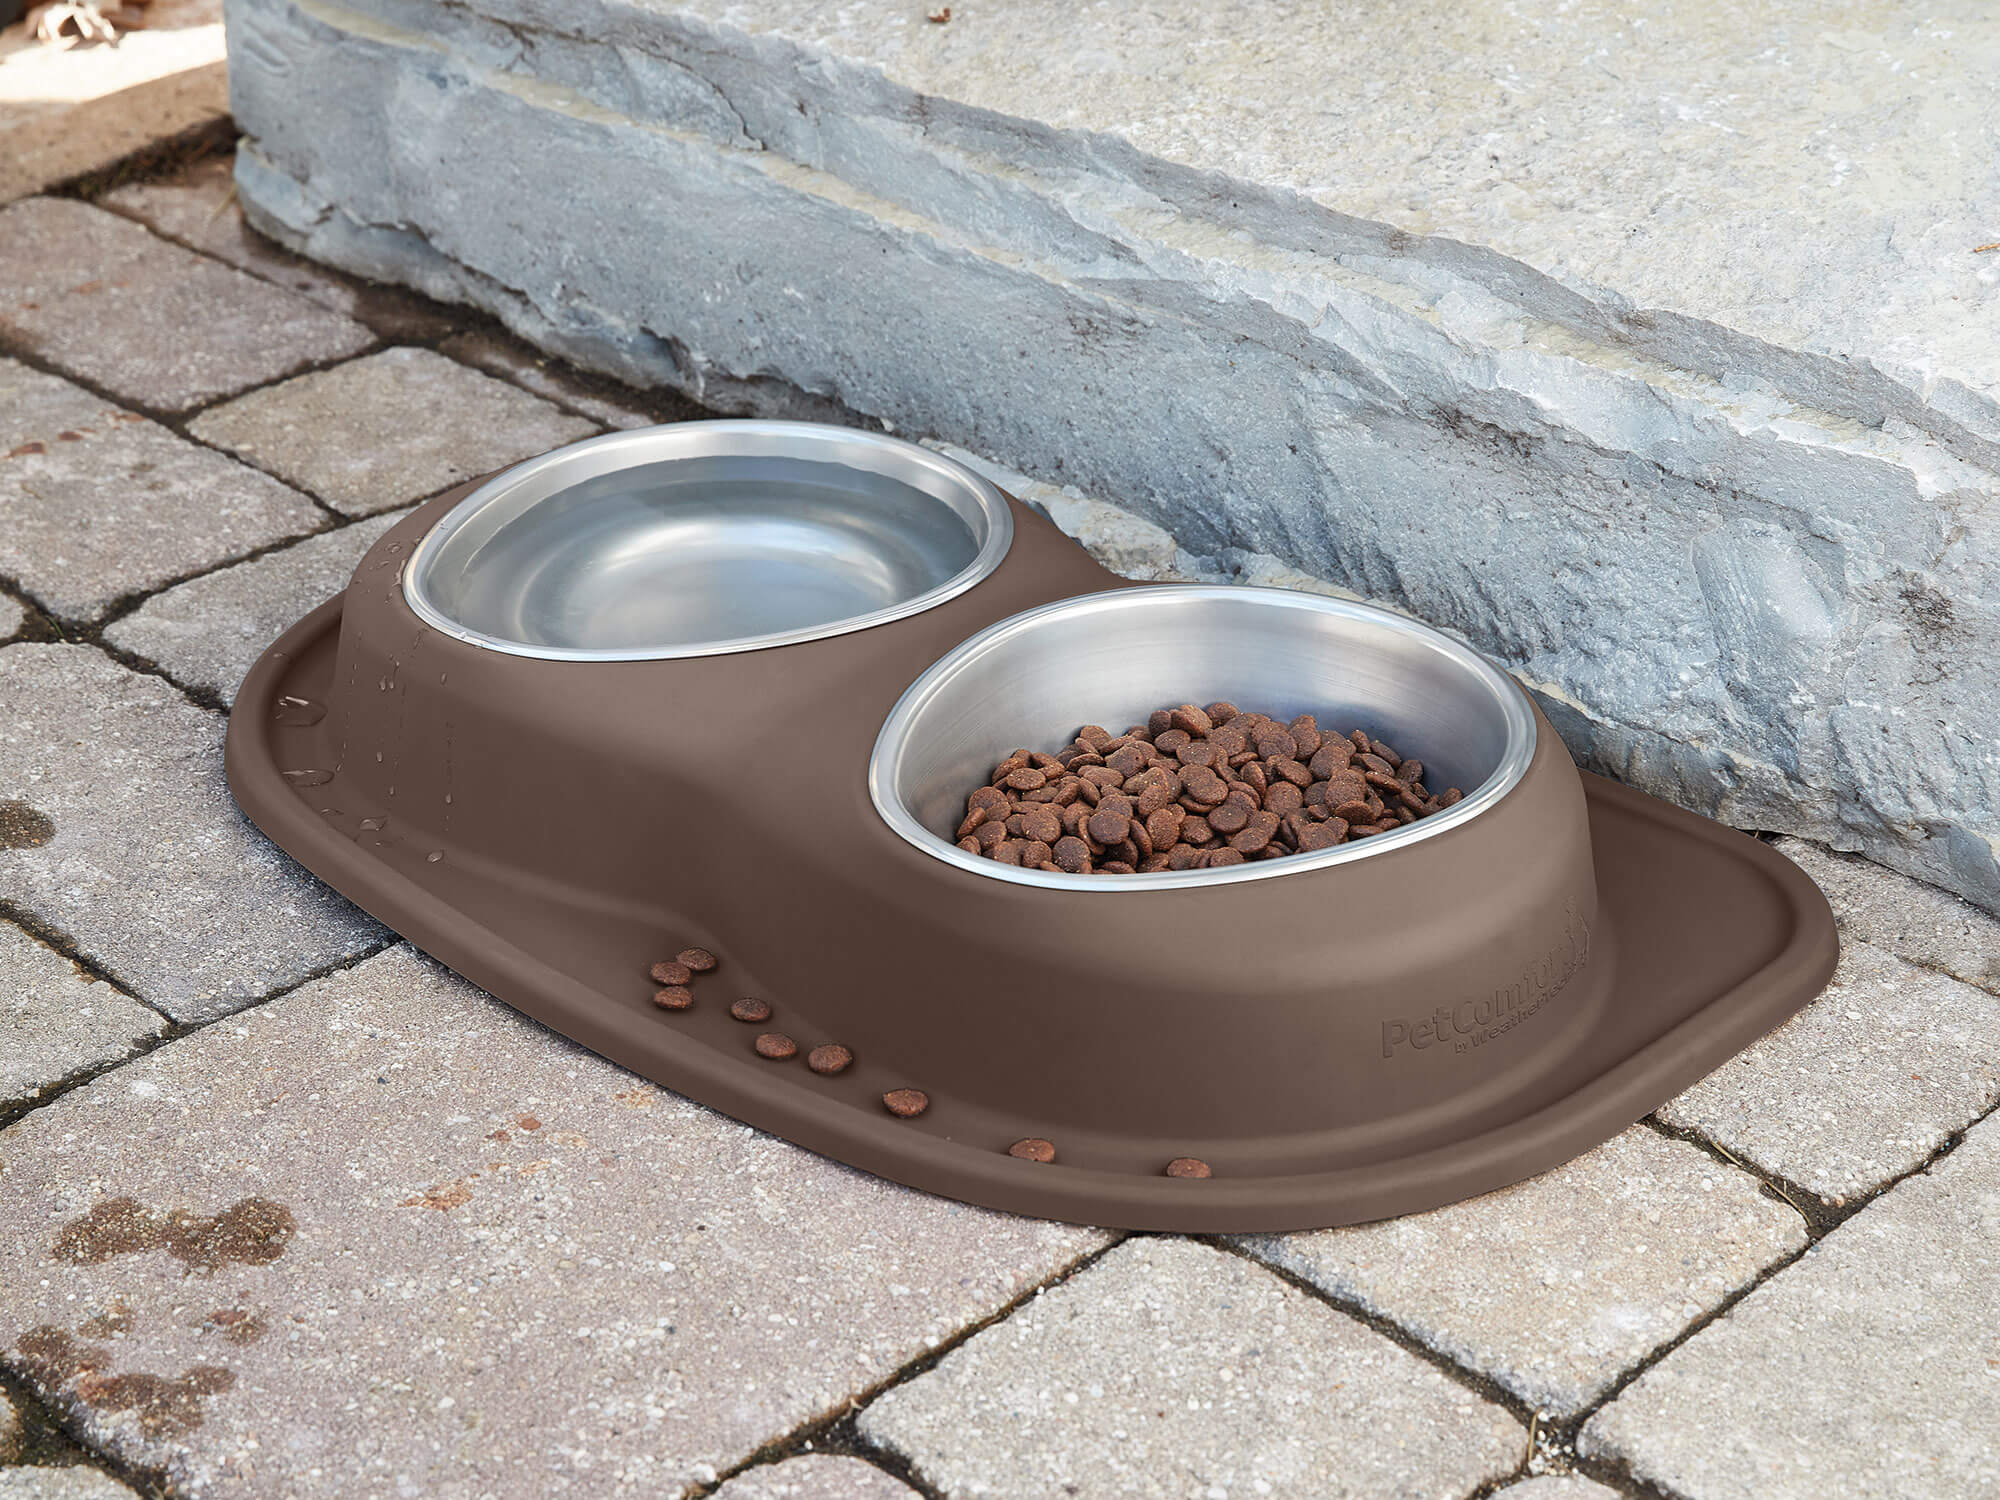 The compact design makes it easy to take the feeding system and dog bowls anywhere.